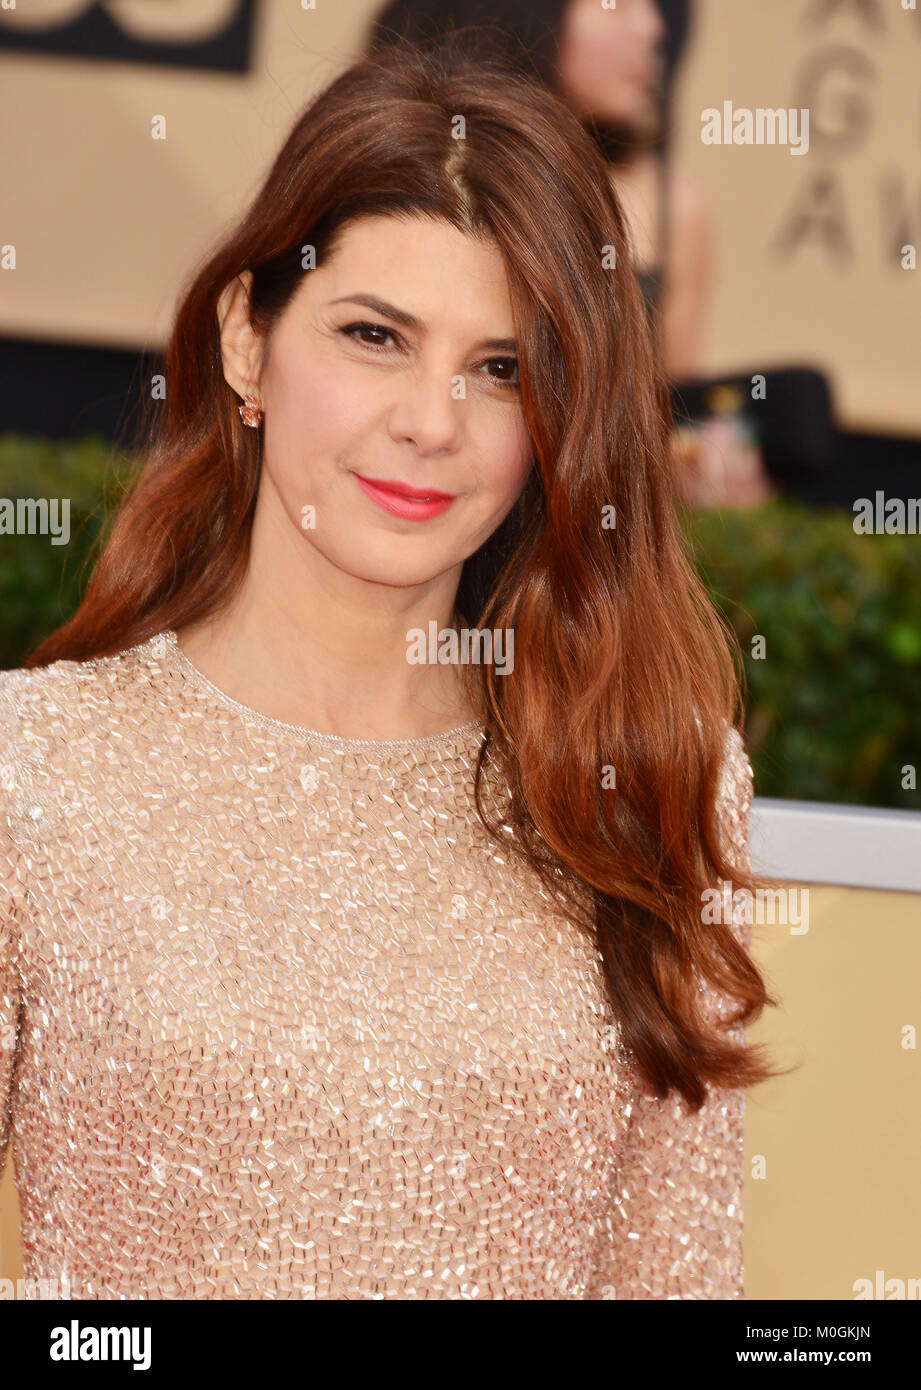 Los Angeles, USA. 21st Jan, 2018. Marisa Tomei 151 attends the 24th Annual Screen Actors Guild Awards at The Shrine - Stock Image